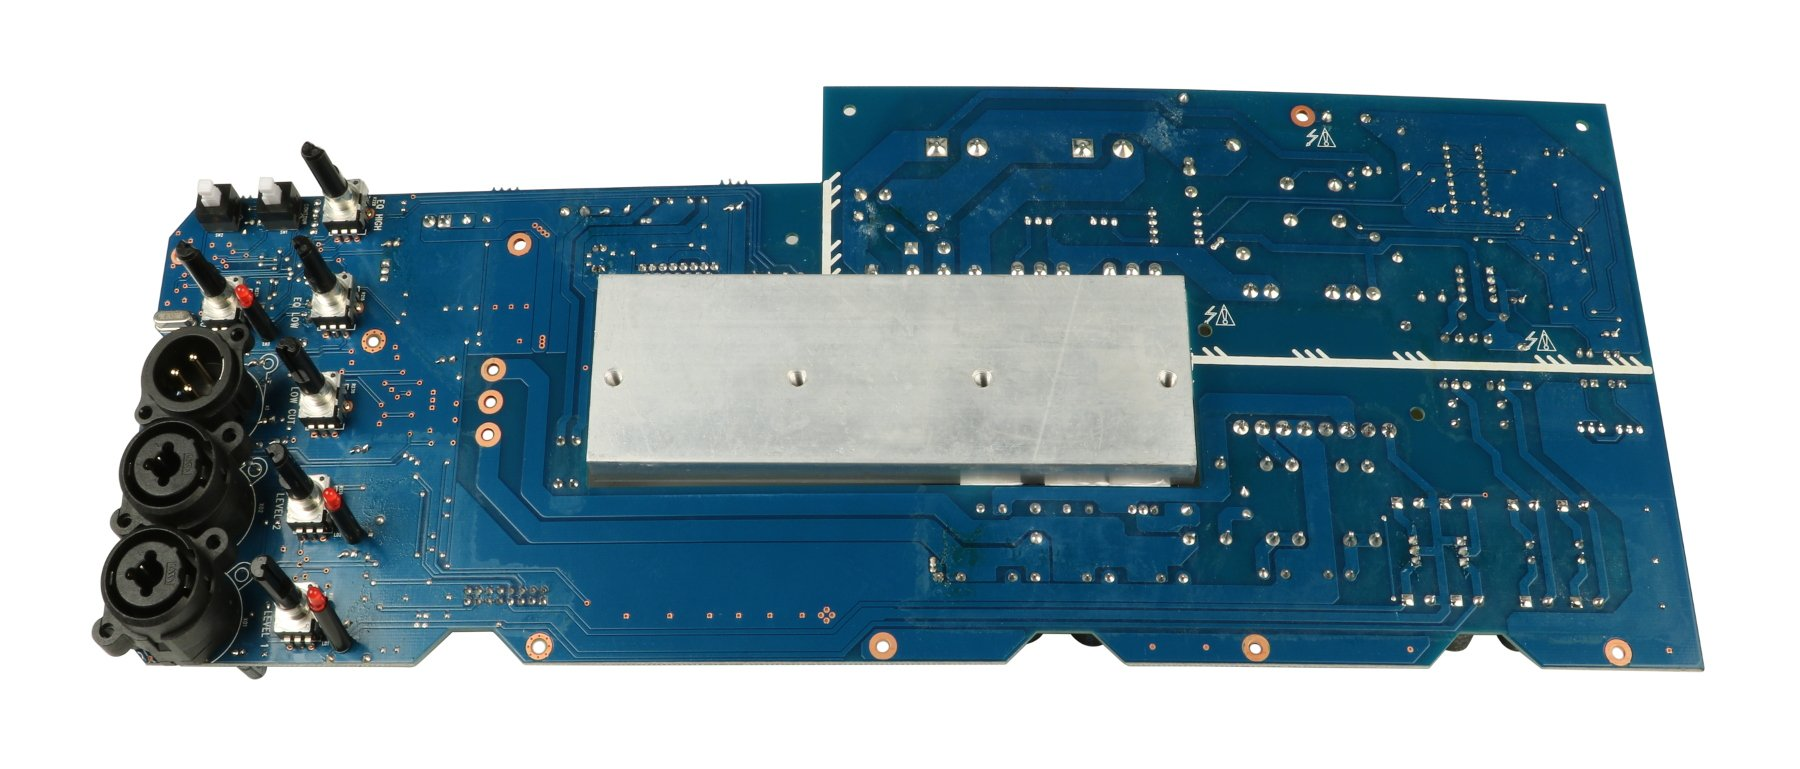 Amp PCB Assembly for B812NEO and B912NEO